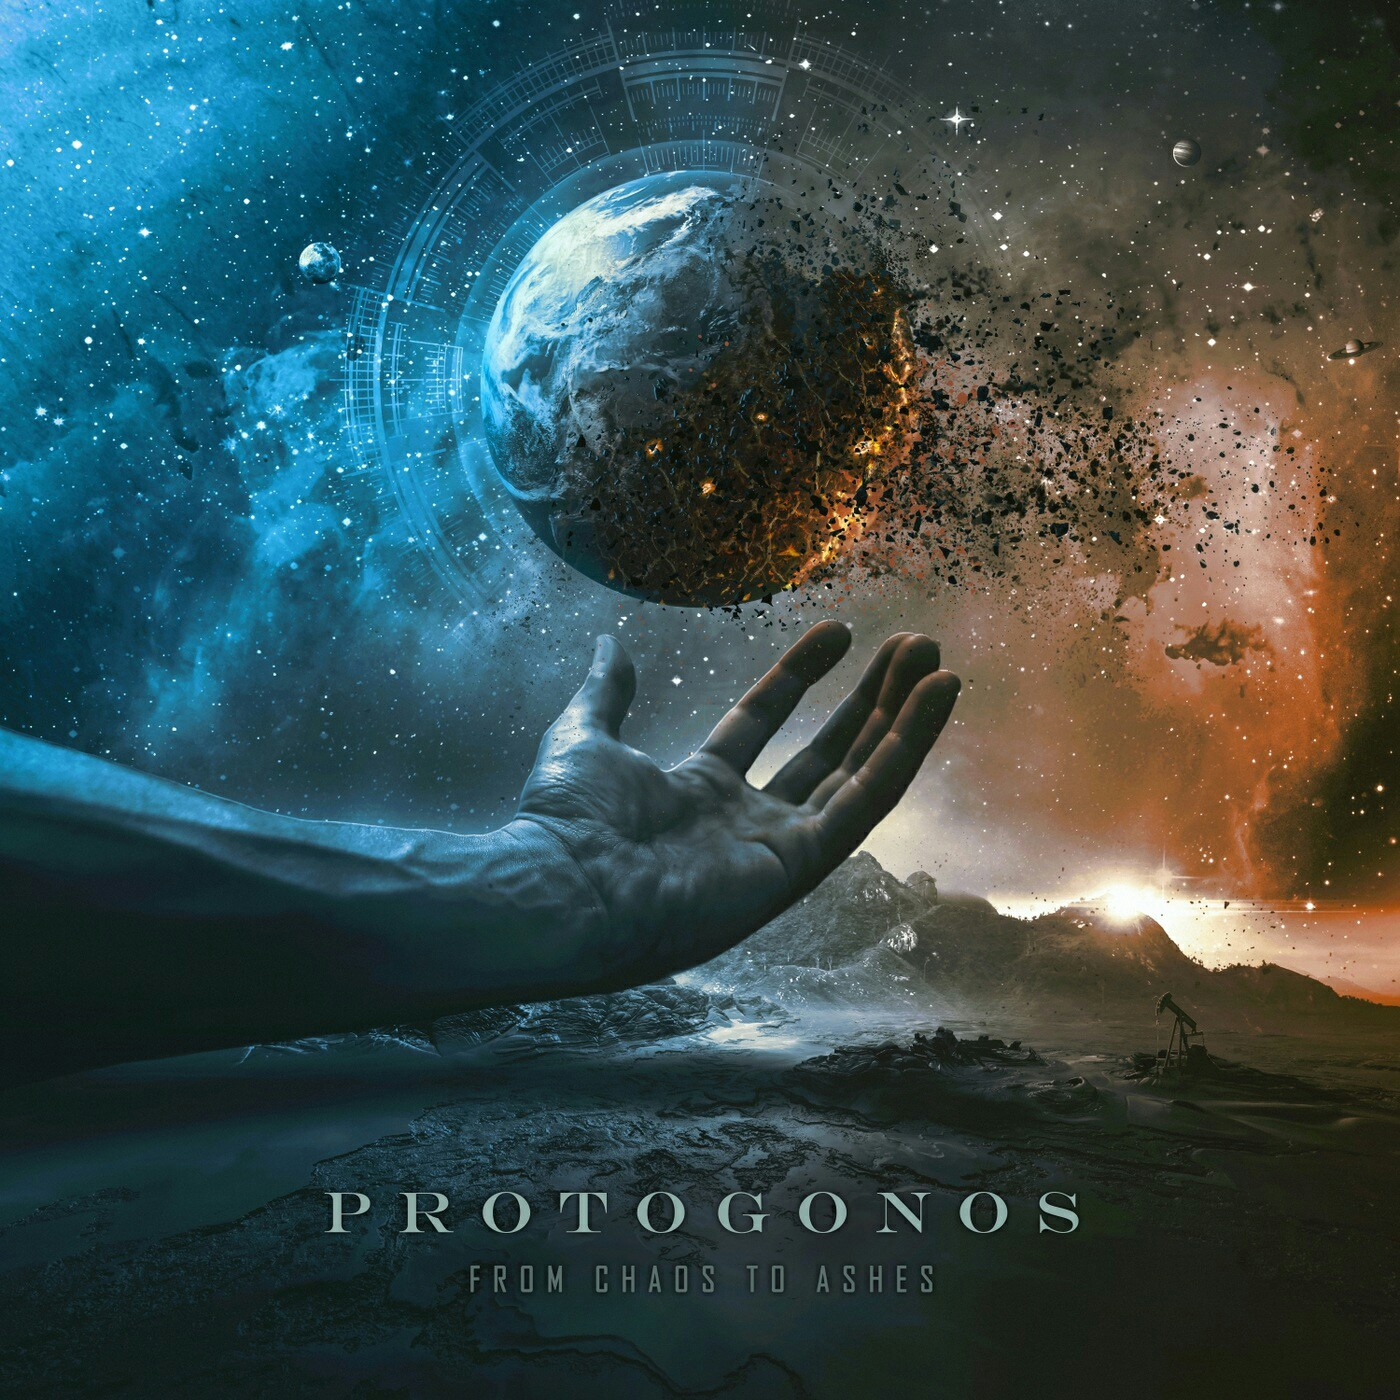 Protogonos - From Chaos To Ashes (2019)